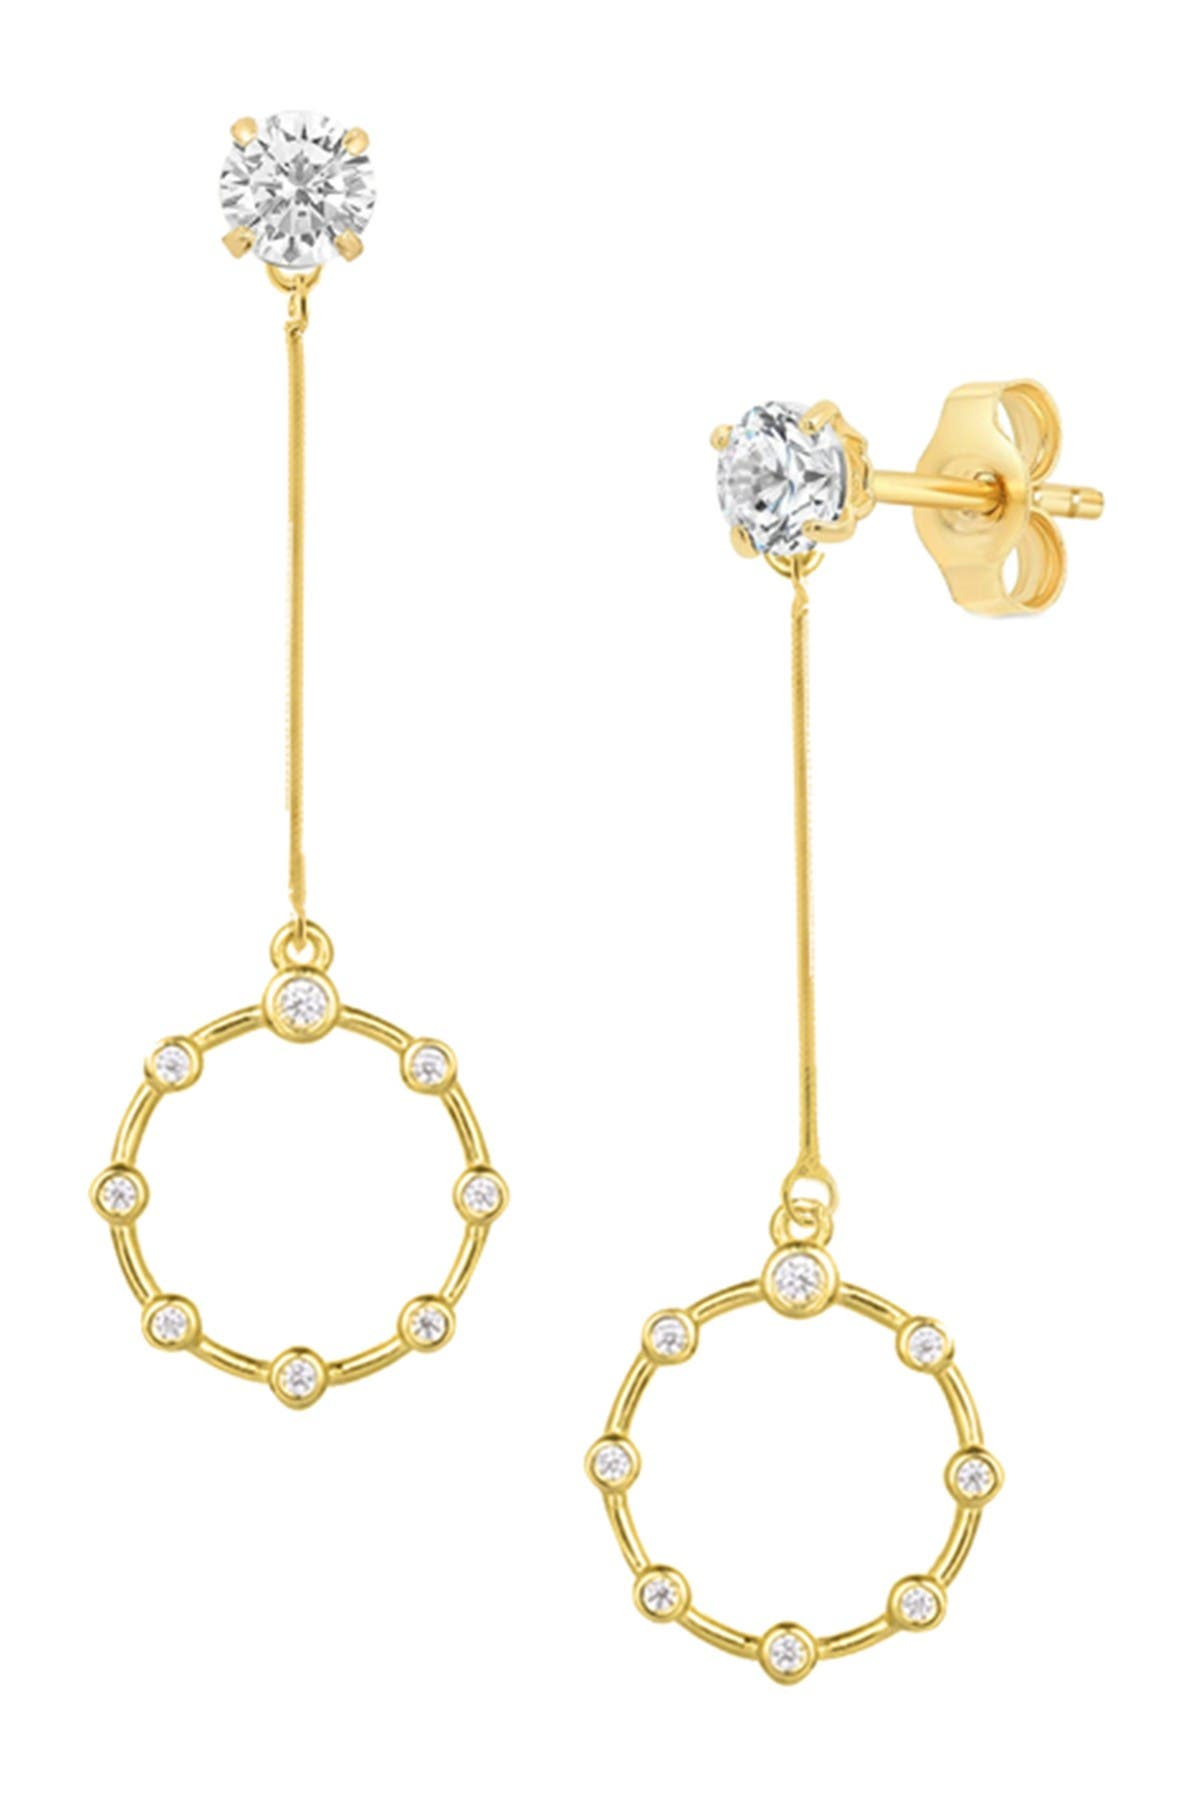 Image of Savvy Cie 18K Yellow Gold Vermeil CZ Ring Drop Earrings